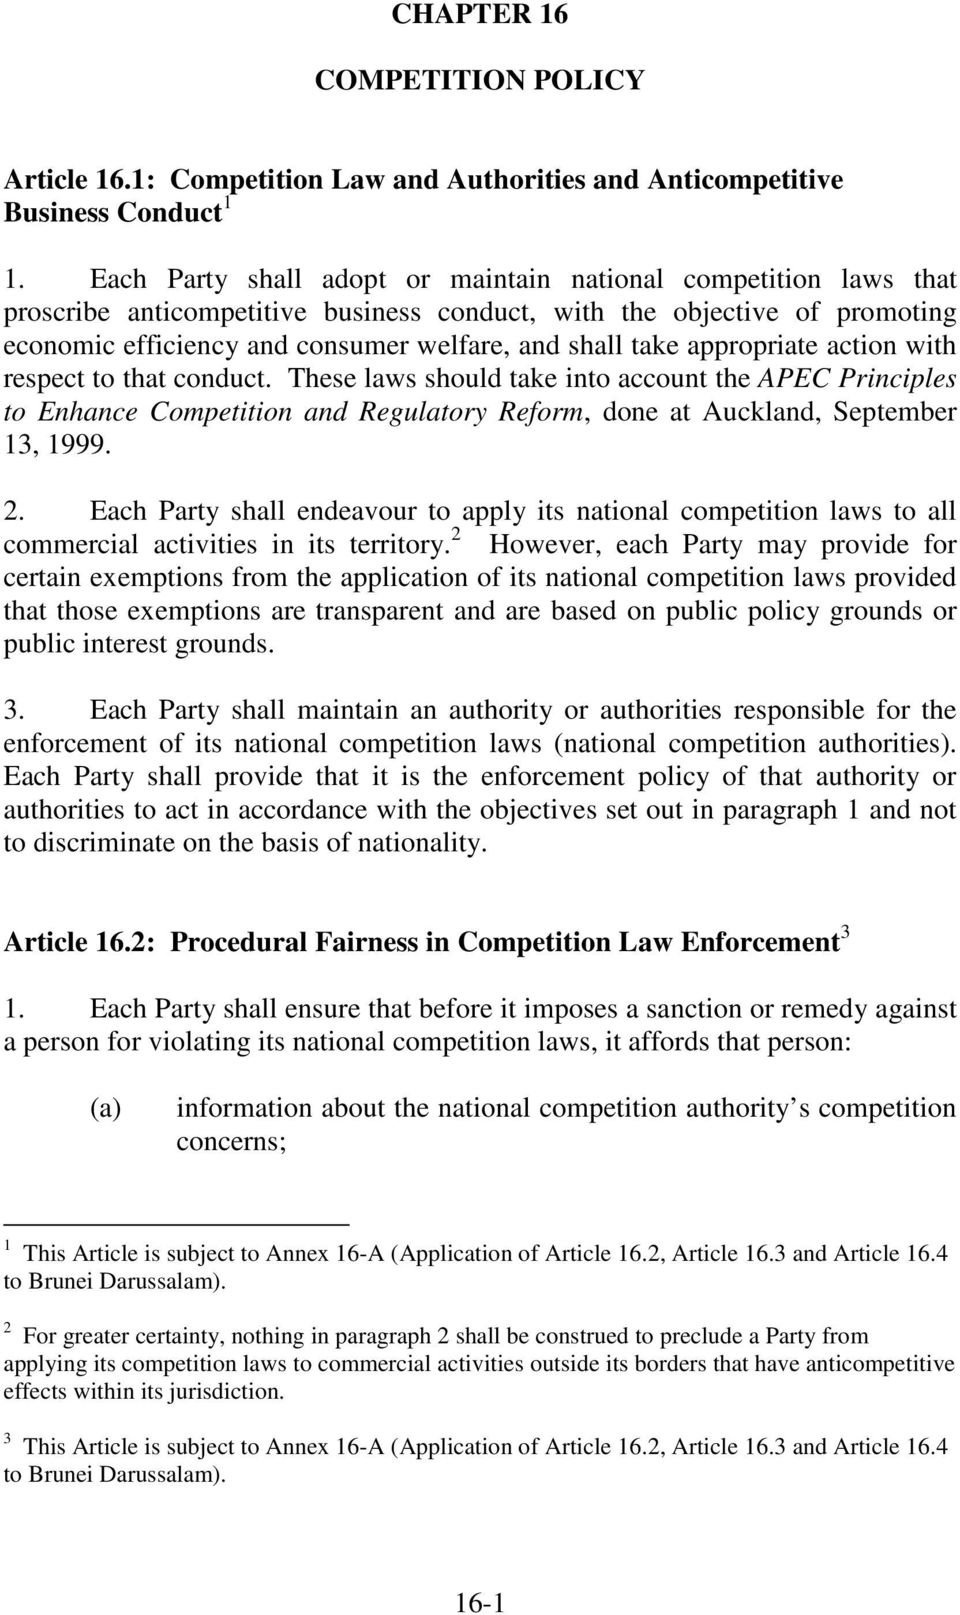 appropriate action with respect to that conduct. These laws should take into account the APEC Principles to Enhance Competition and Regulatory Reform, done at Auckland, September 13, 1999. 2.